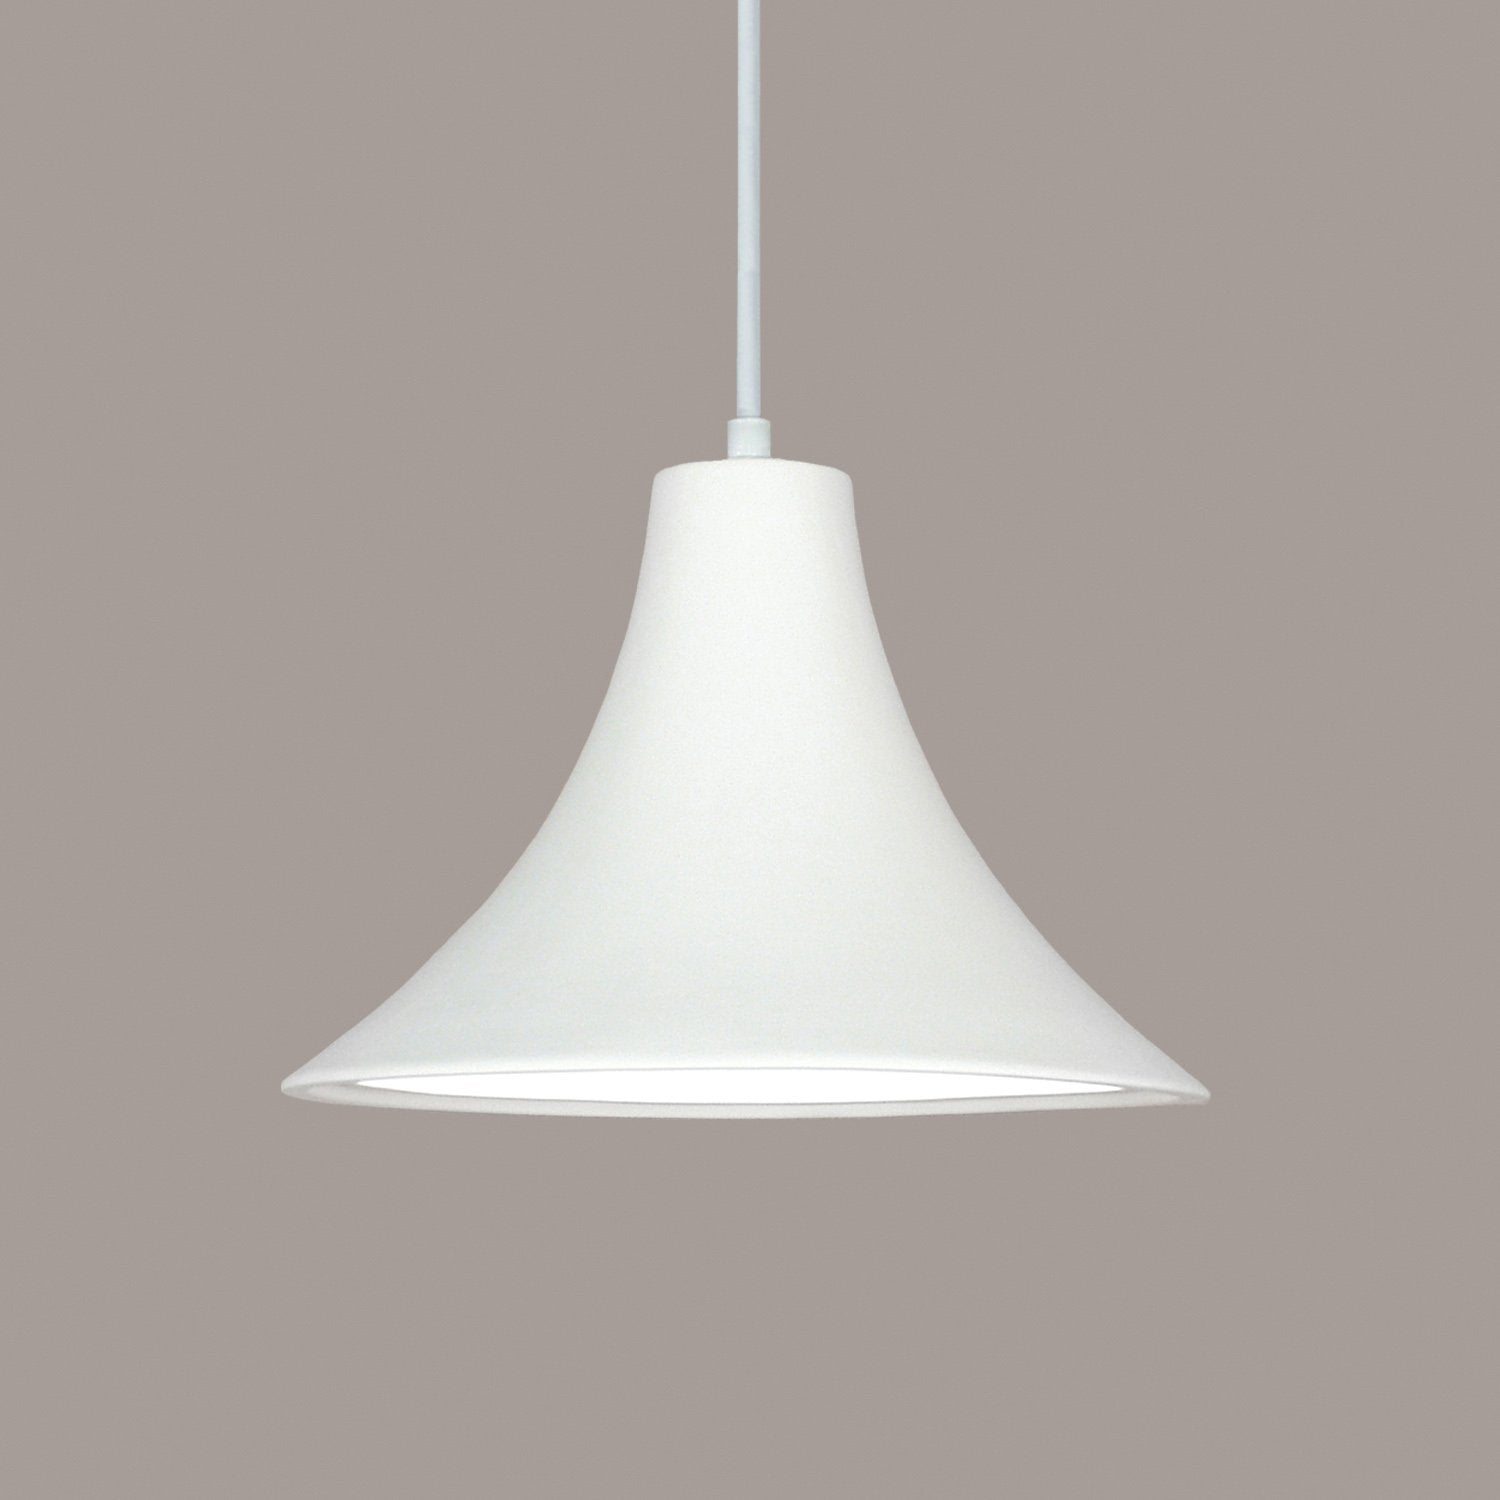 A19 P501-A20-BCC Islands of Light Collection Madera Spanish Olive Finish Pendant